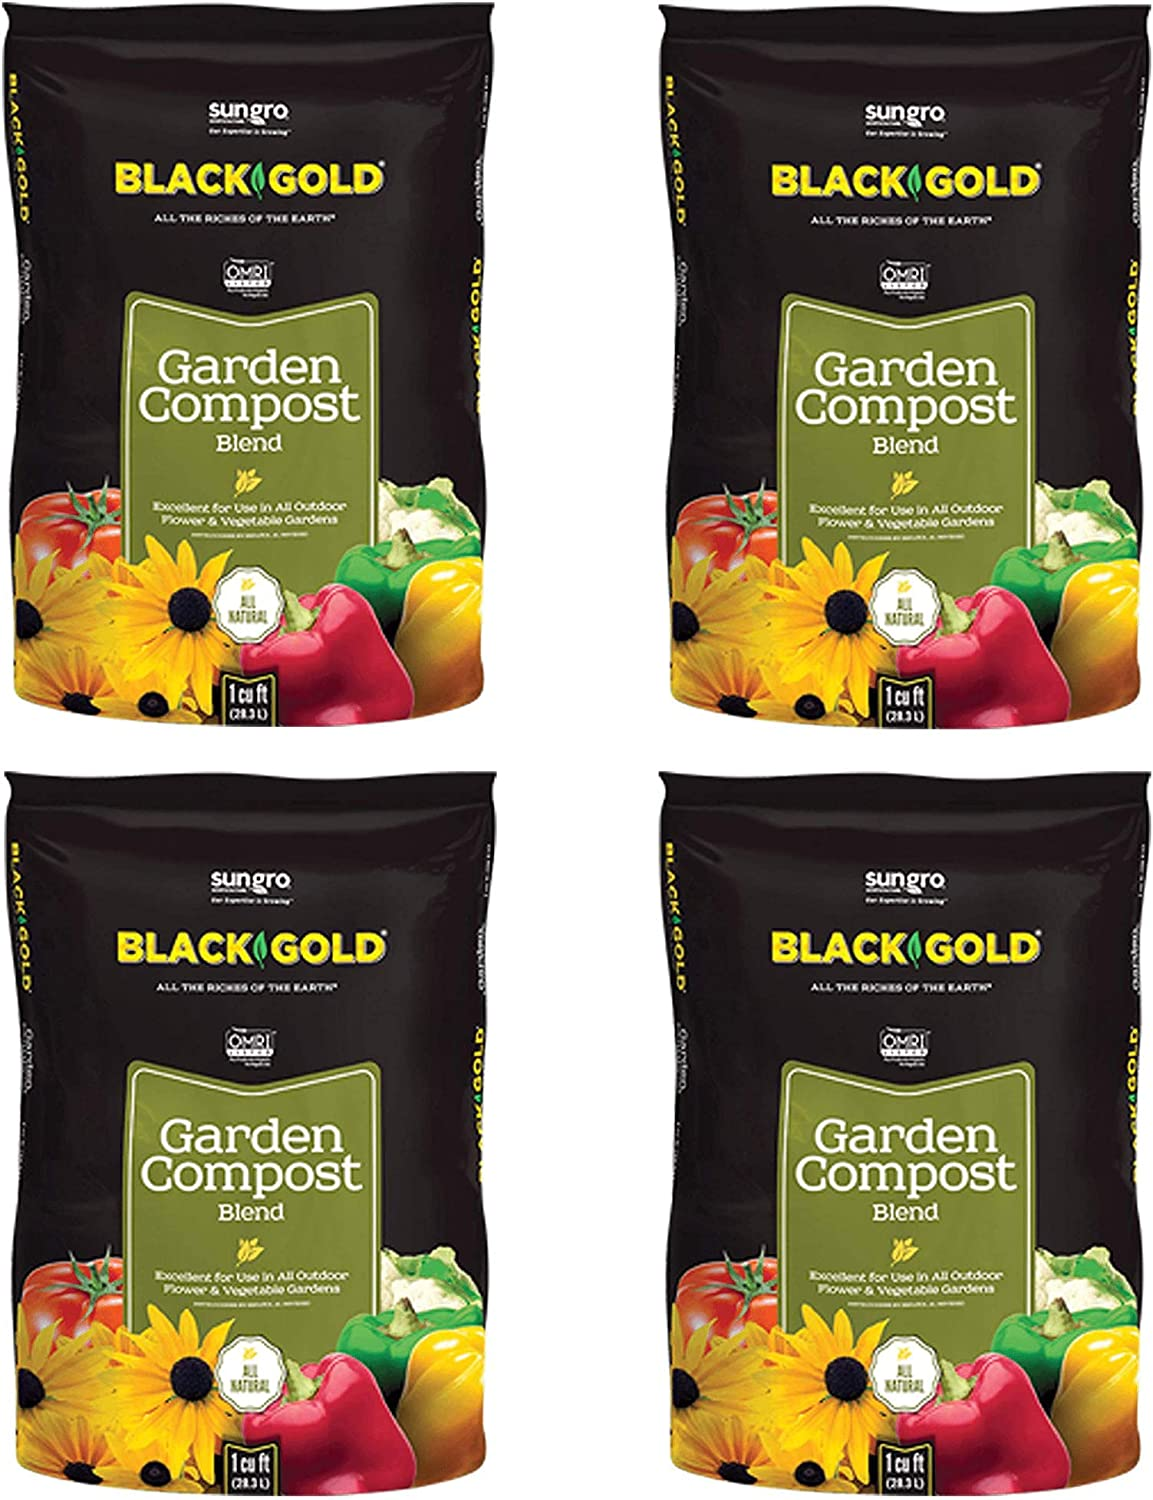 SunGro Black Gold Outdoor Natural and Organic Garden Compost Blend Potting Soil Fertilizer Mix for Outdoor Plants, 1 Cubic Foot Bag (4 Pack)